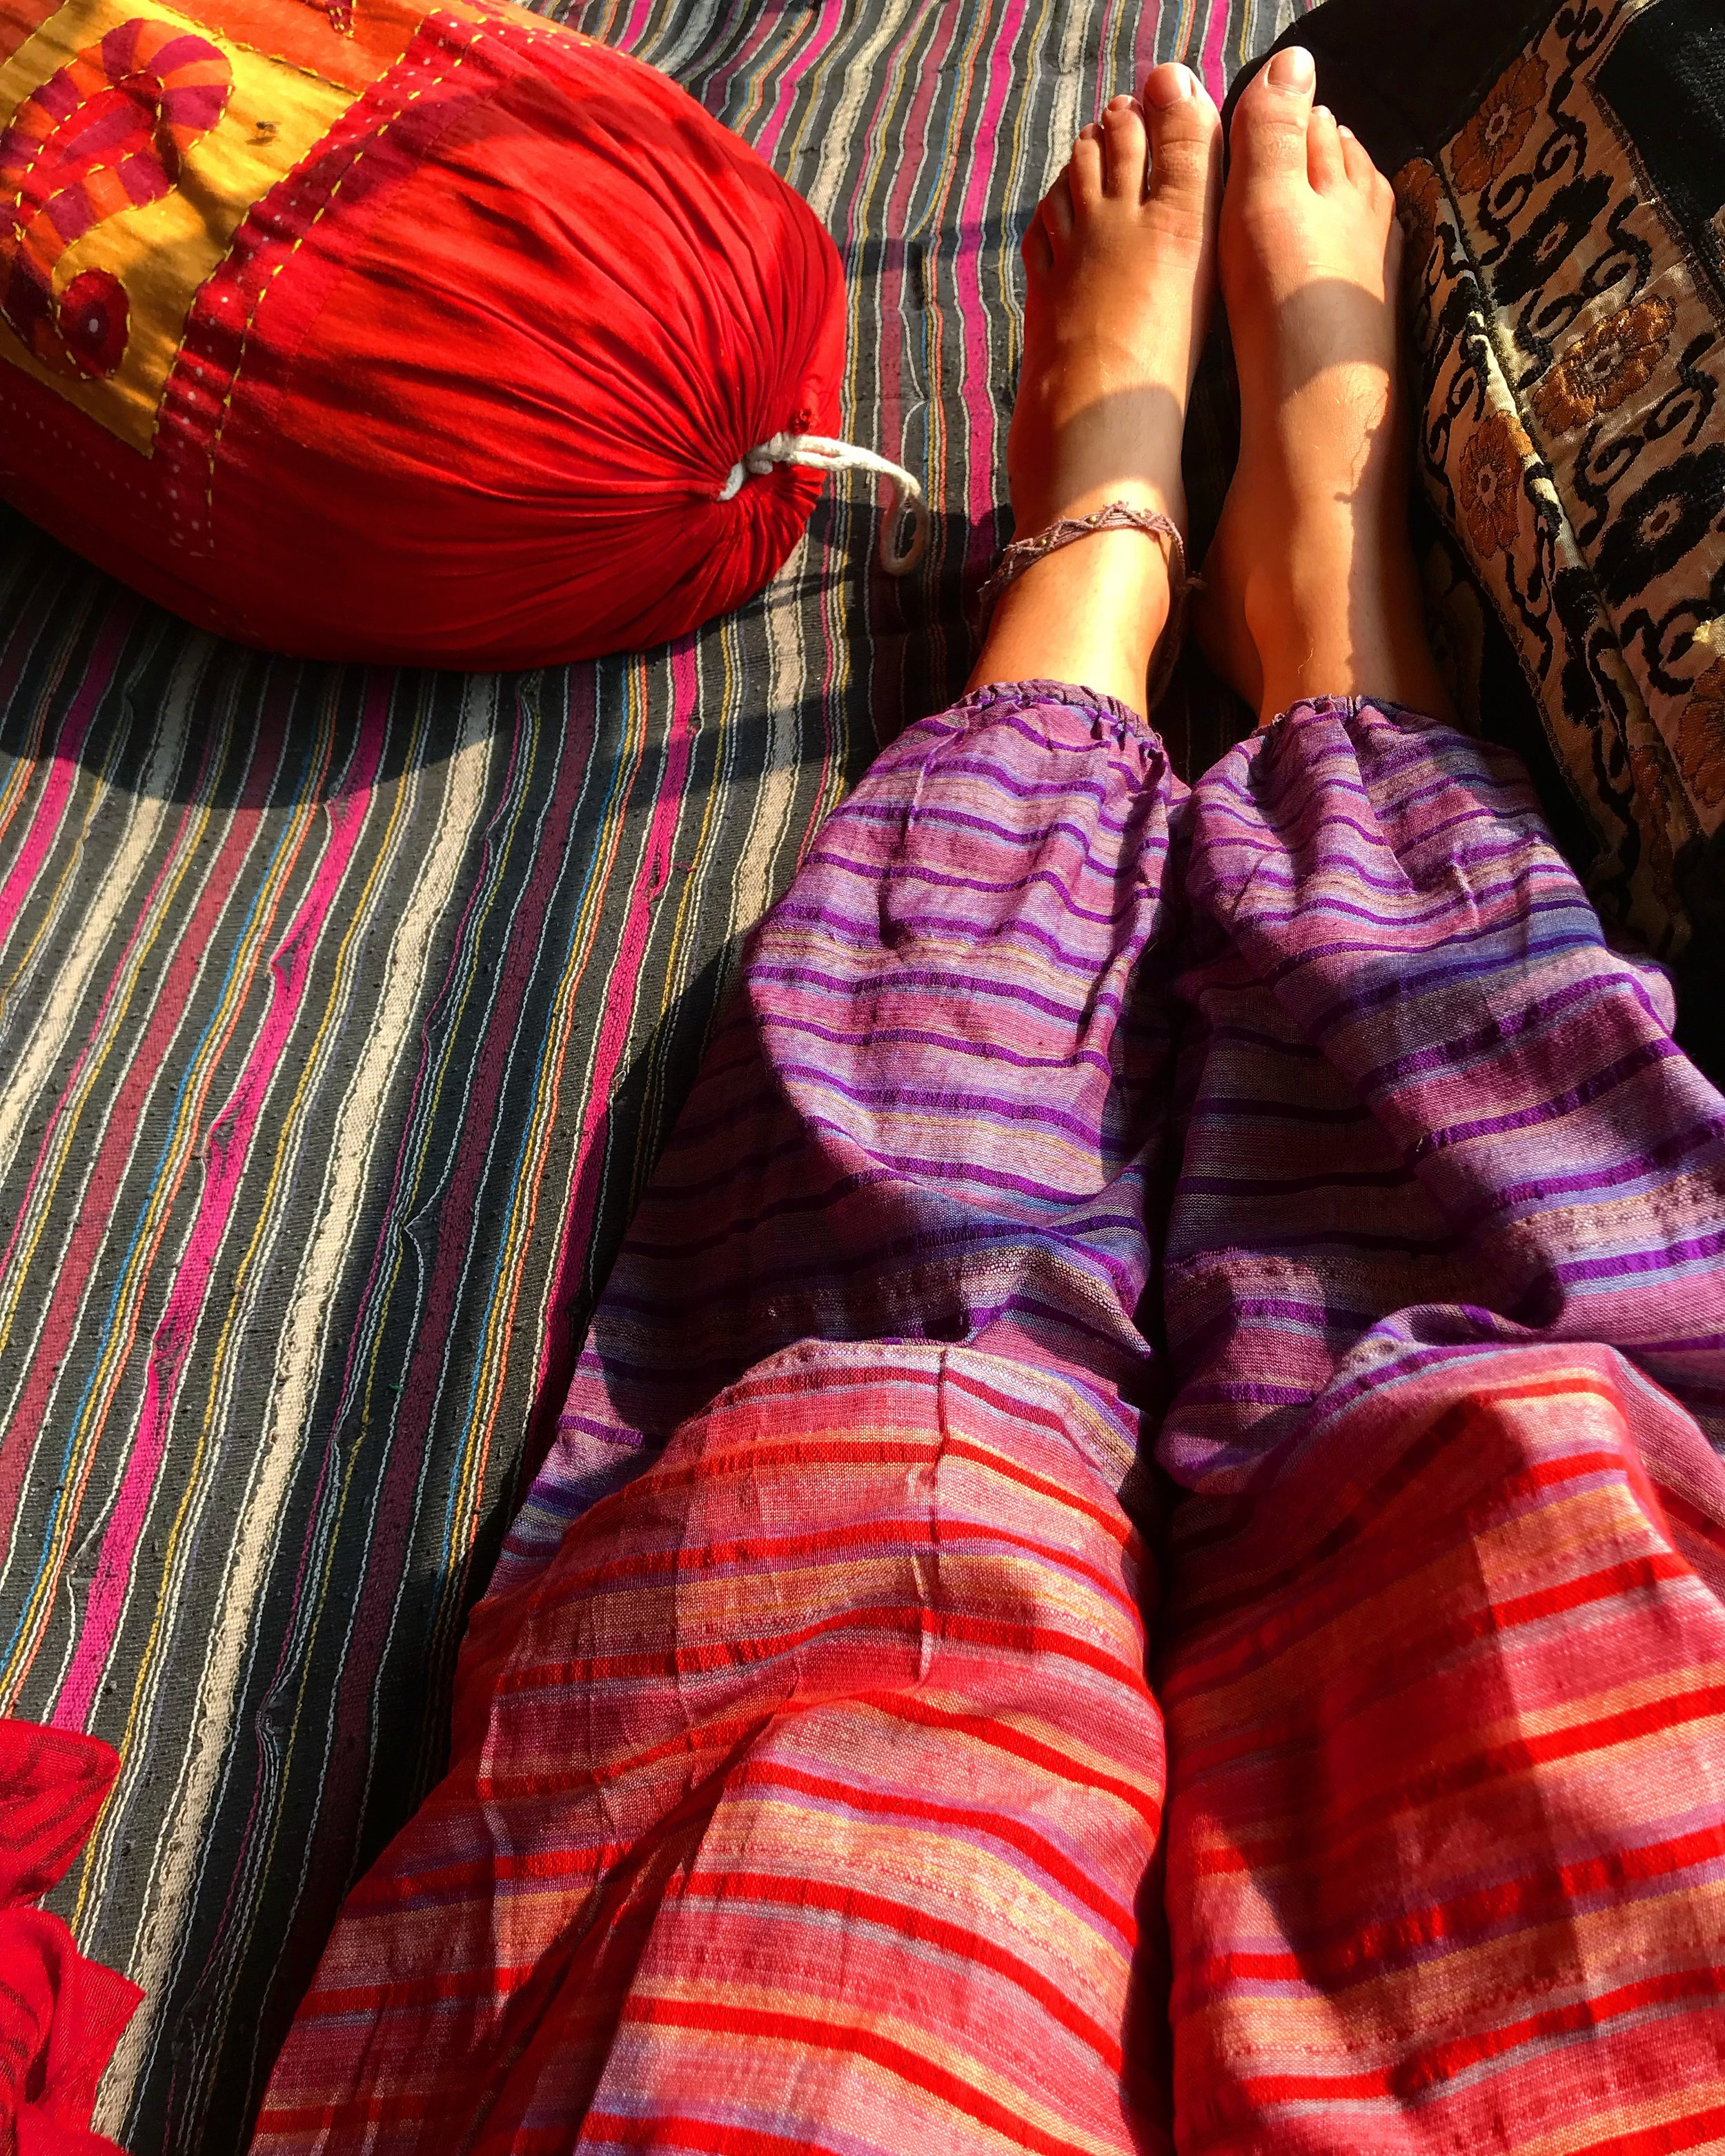 My funky pants matching the boho style blankets at Shambala Cafe.